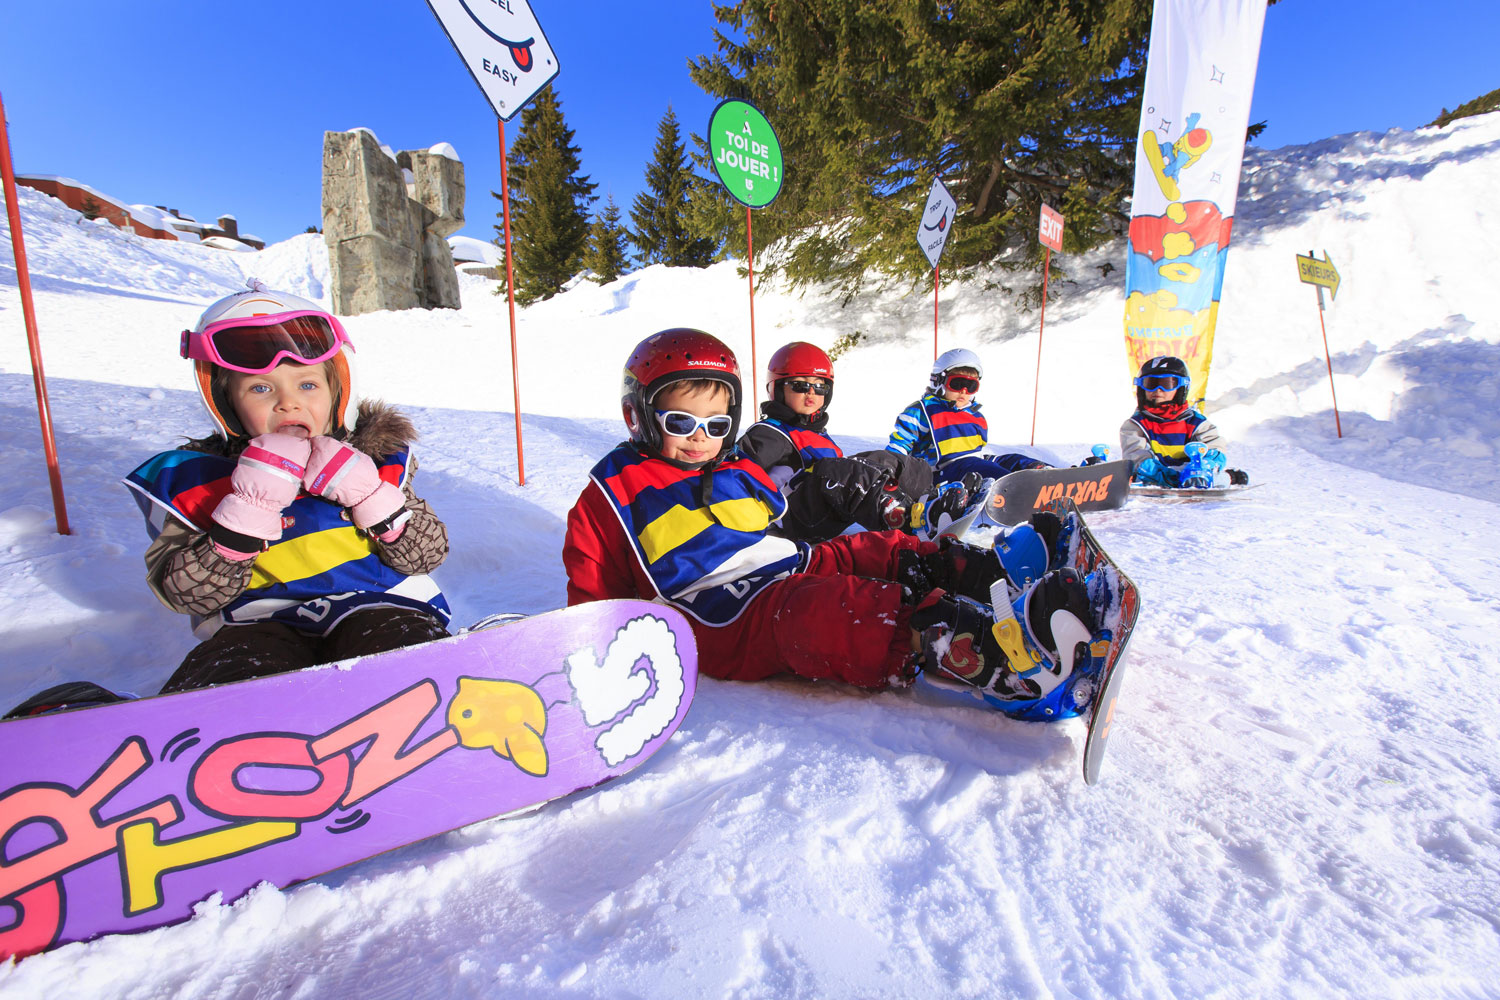 Kids Learning to snowboard in Avoriaz - Pascal Gombert